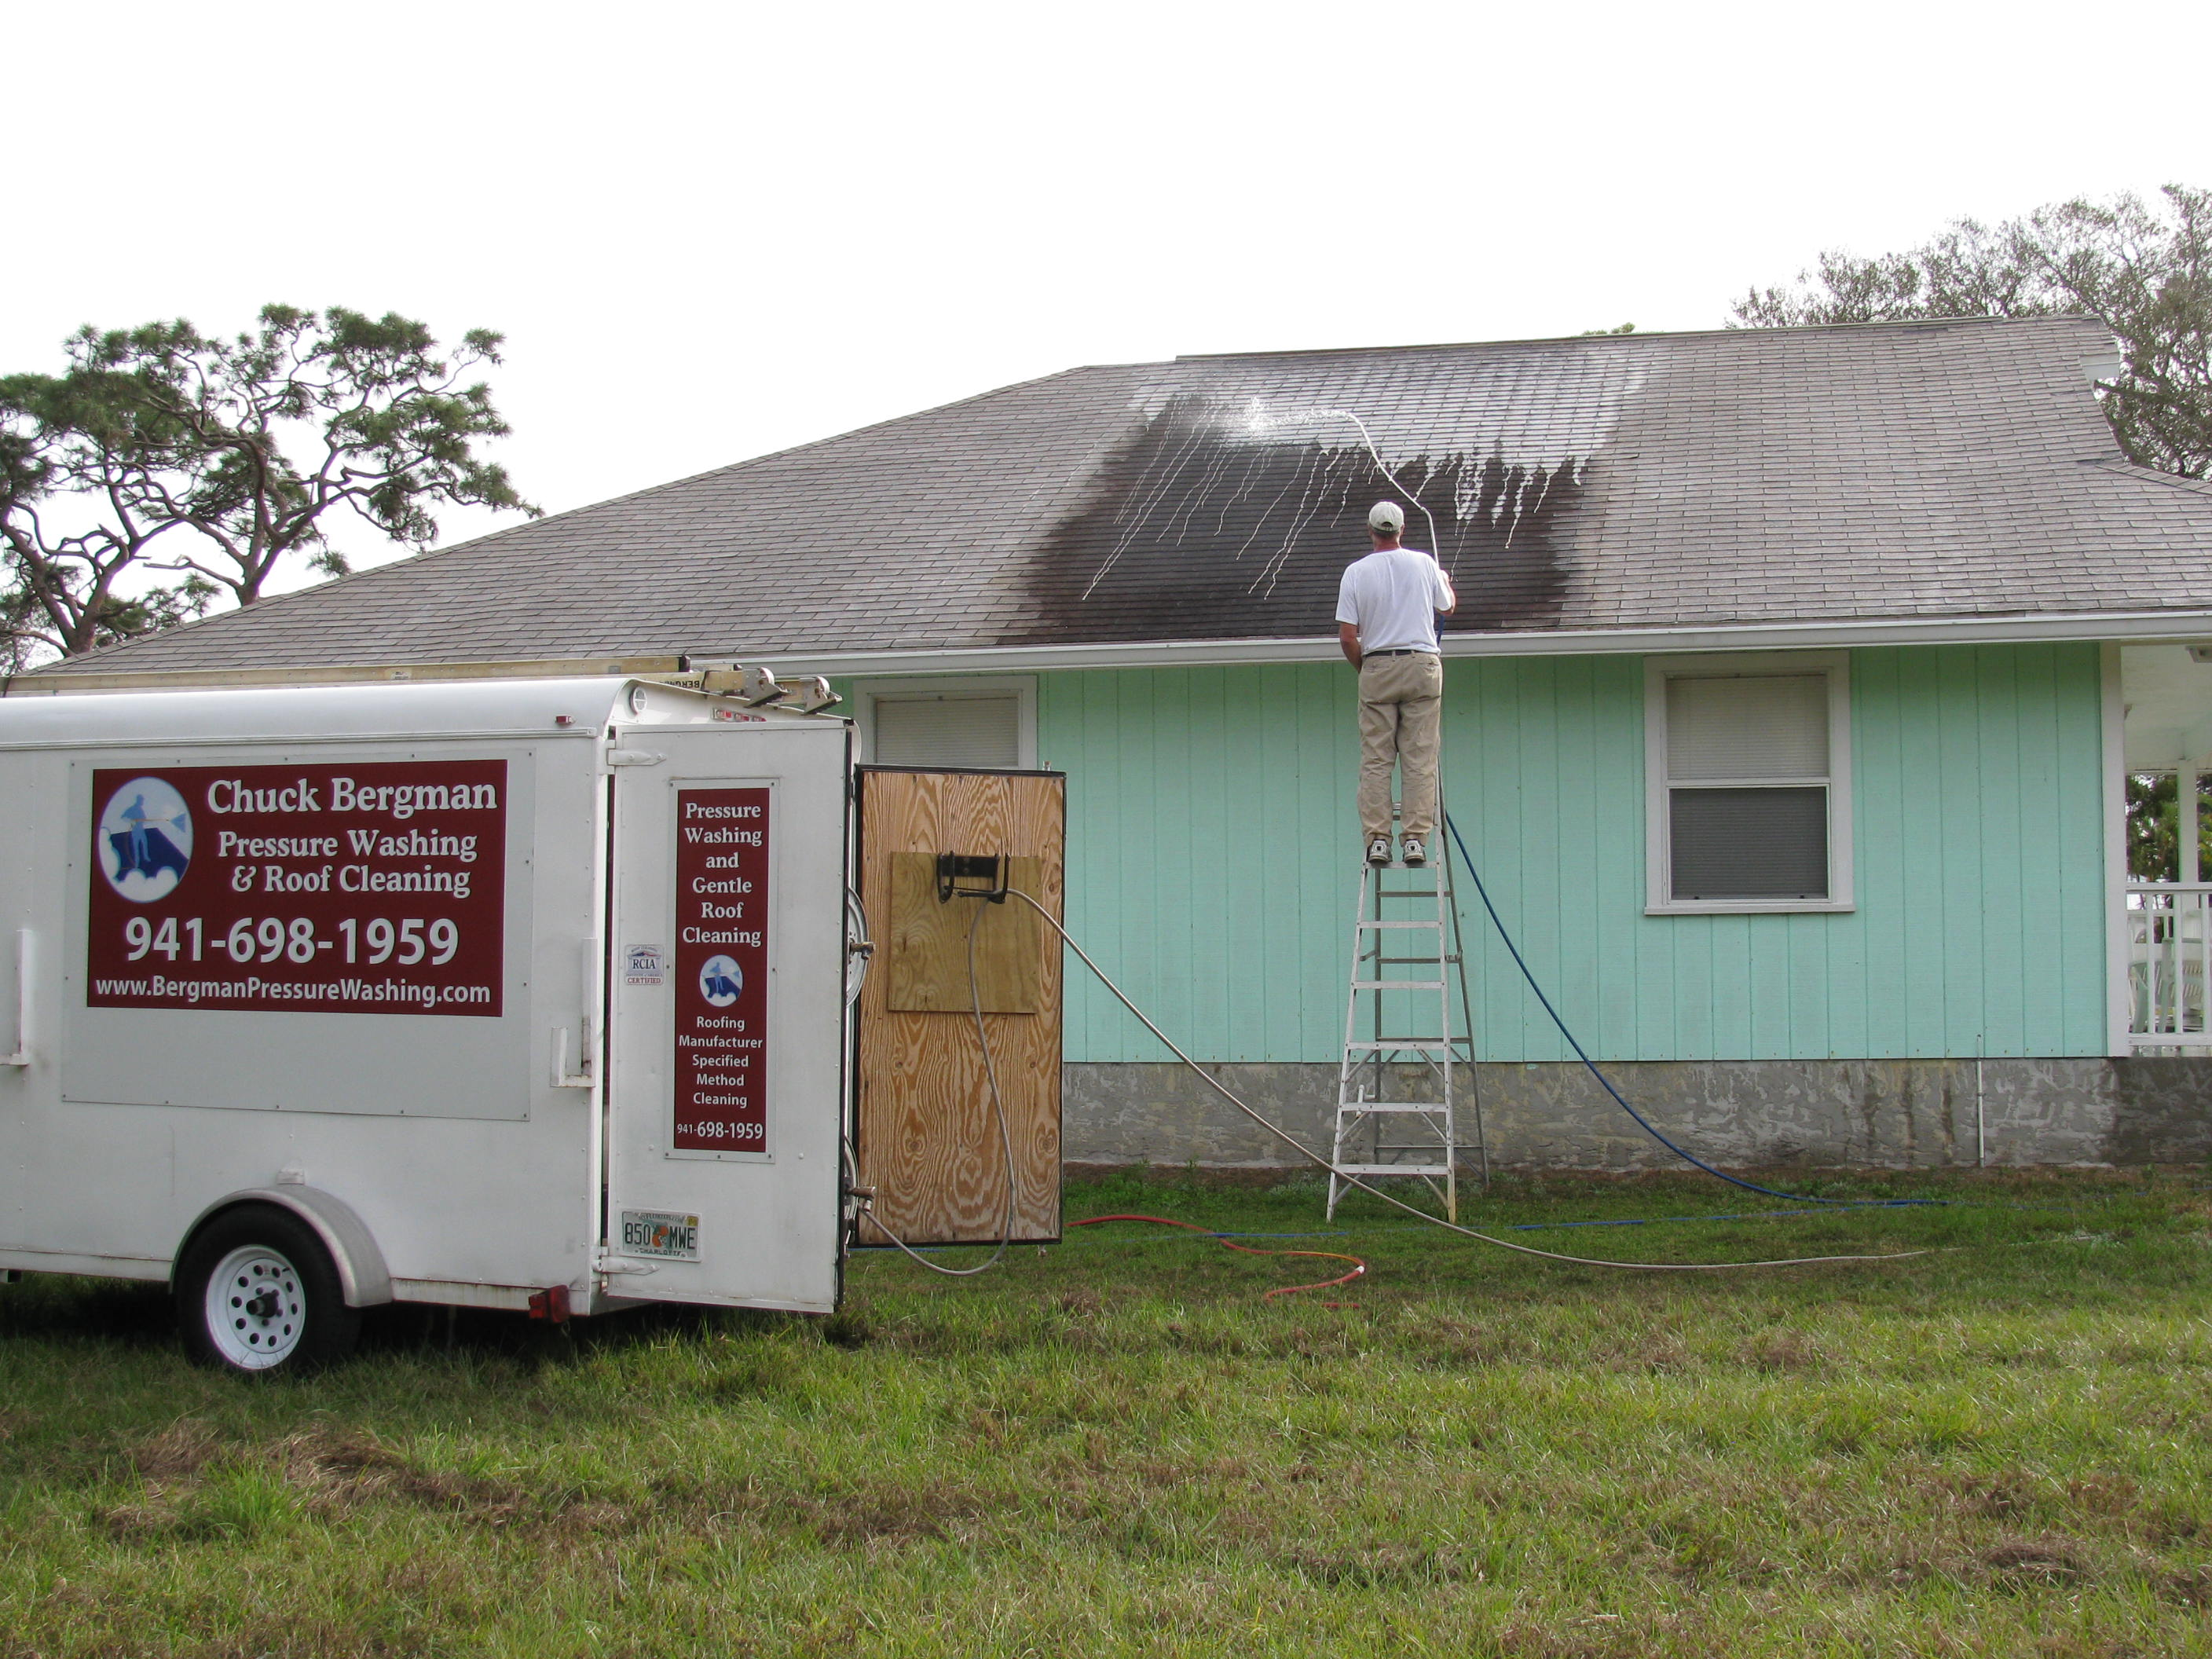 Englewood + Venice Fl Pressure Cleaning - YP.com